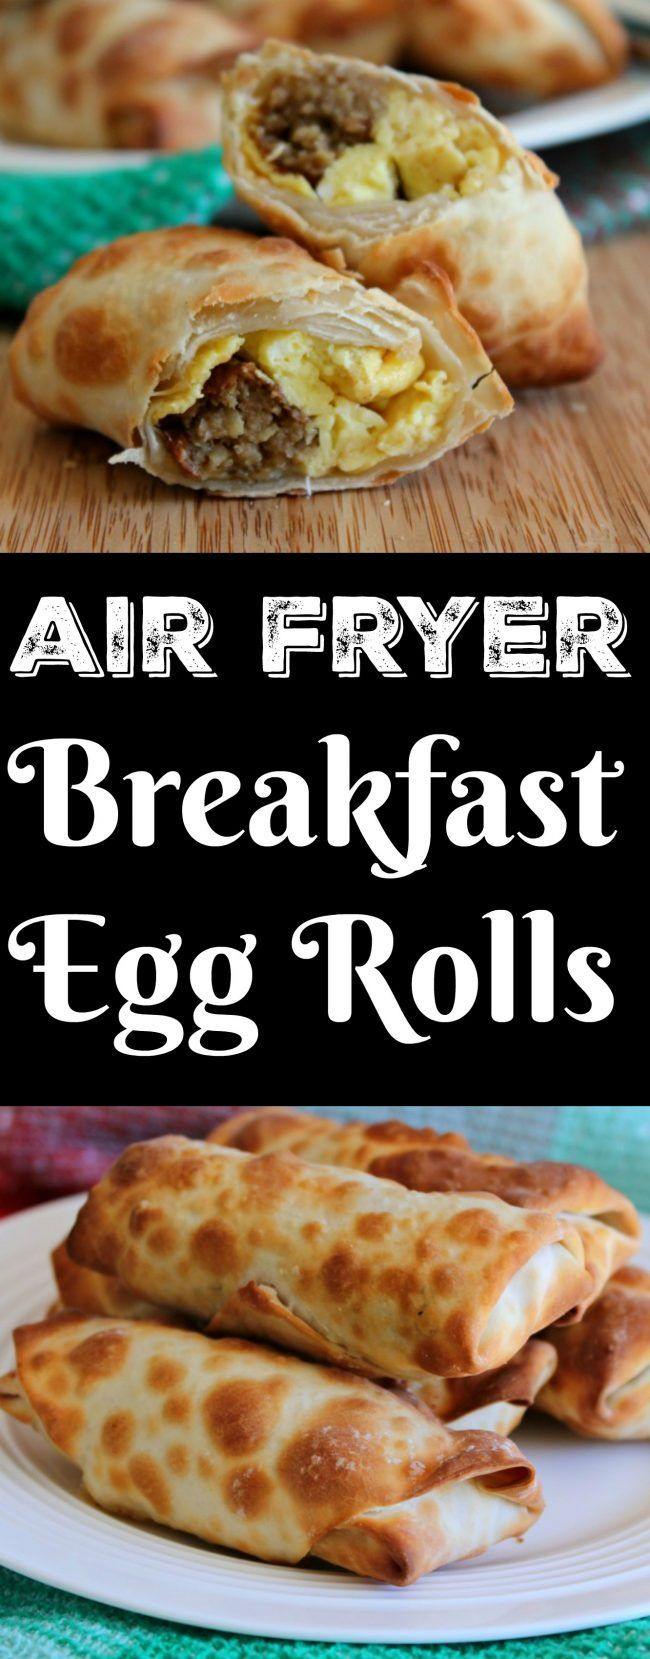 Breakfast Egg Rolls Air Fryer #eggrolls